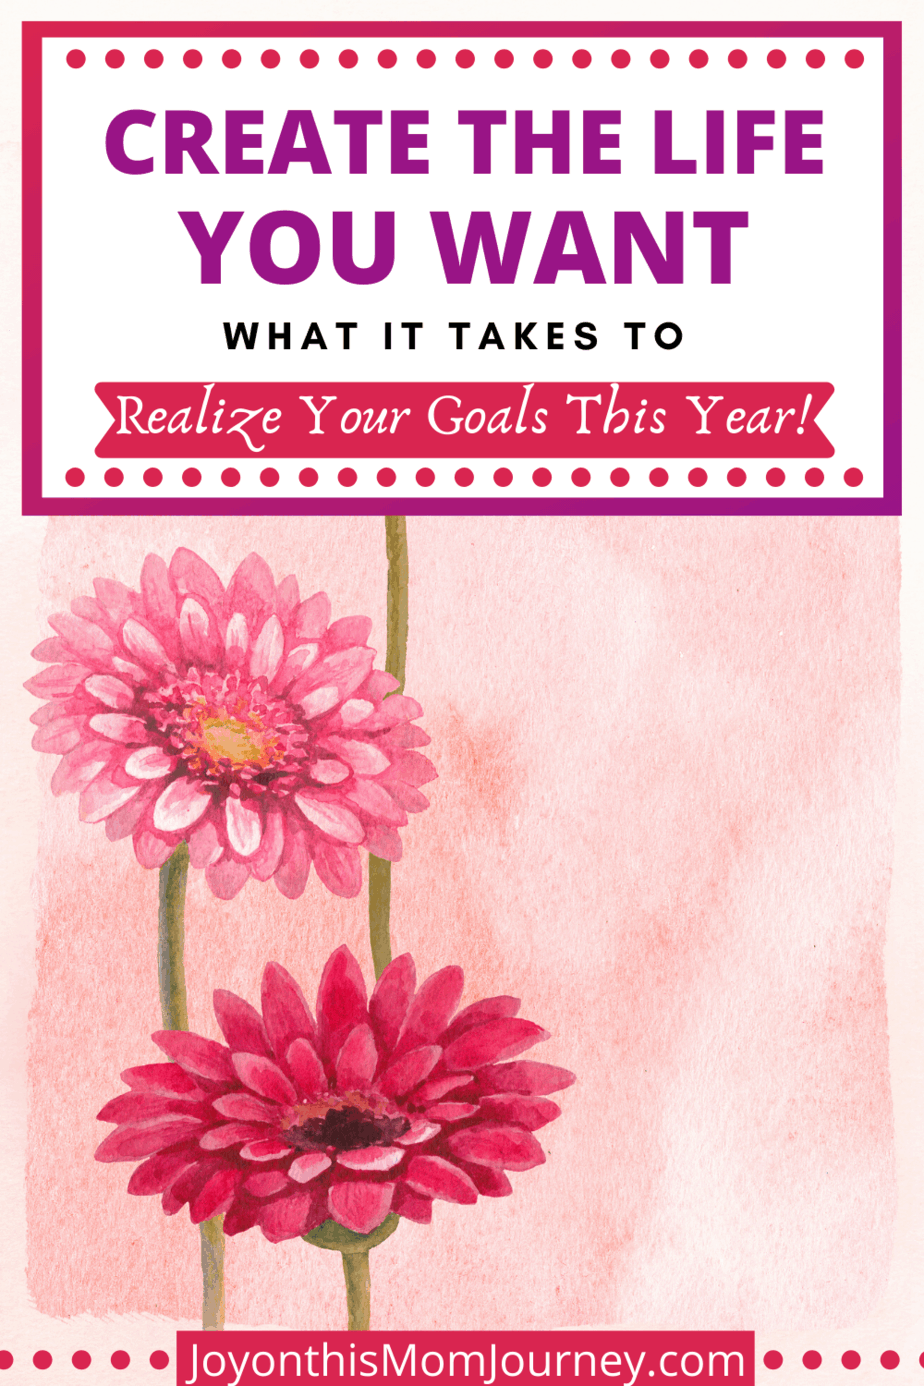 make goals and achieve them craft life you want this year. succeed at goals